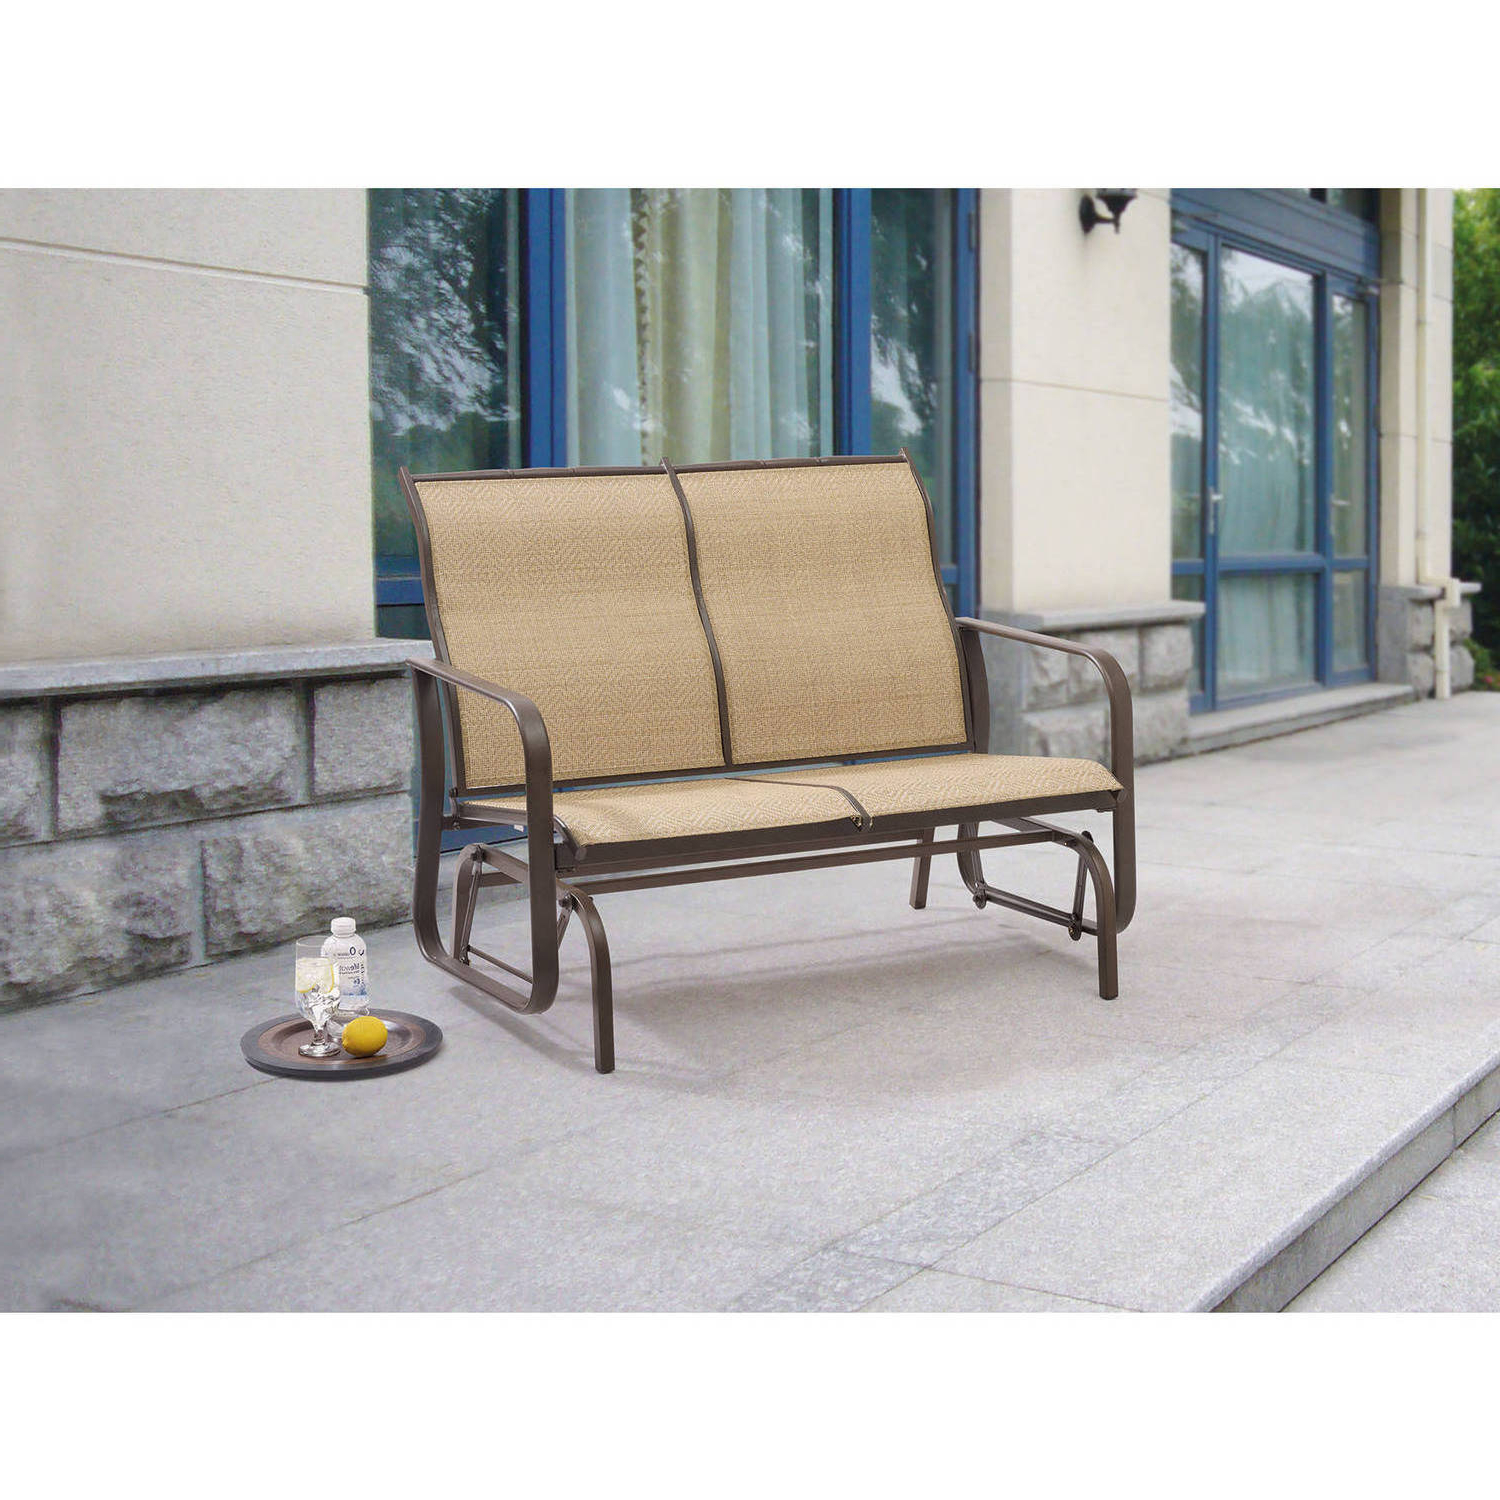 Mainstays Wesley Creek 2 Seat Outdoor Sling Seat Glider – Walmart Throughout Most Recently Released Outdoor Swing Glider Chairs With Powder Coated Steel Frame (View 5 of 25)